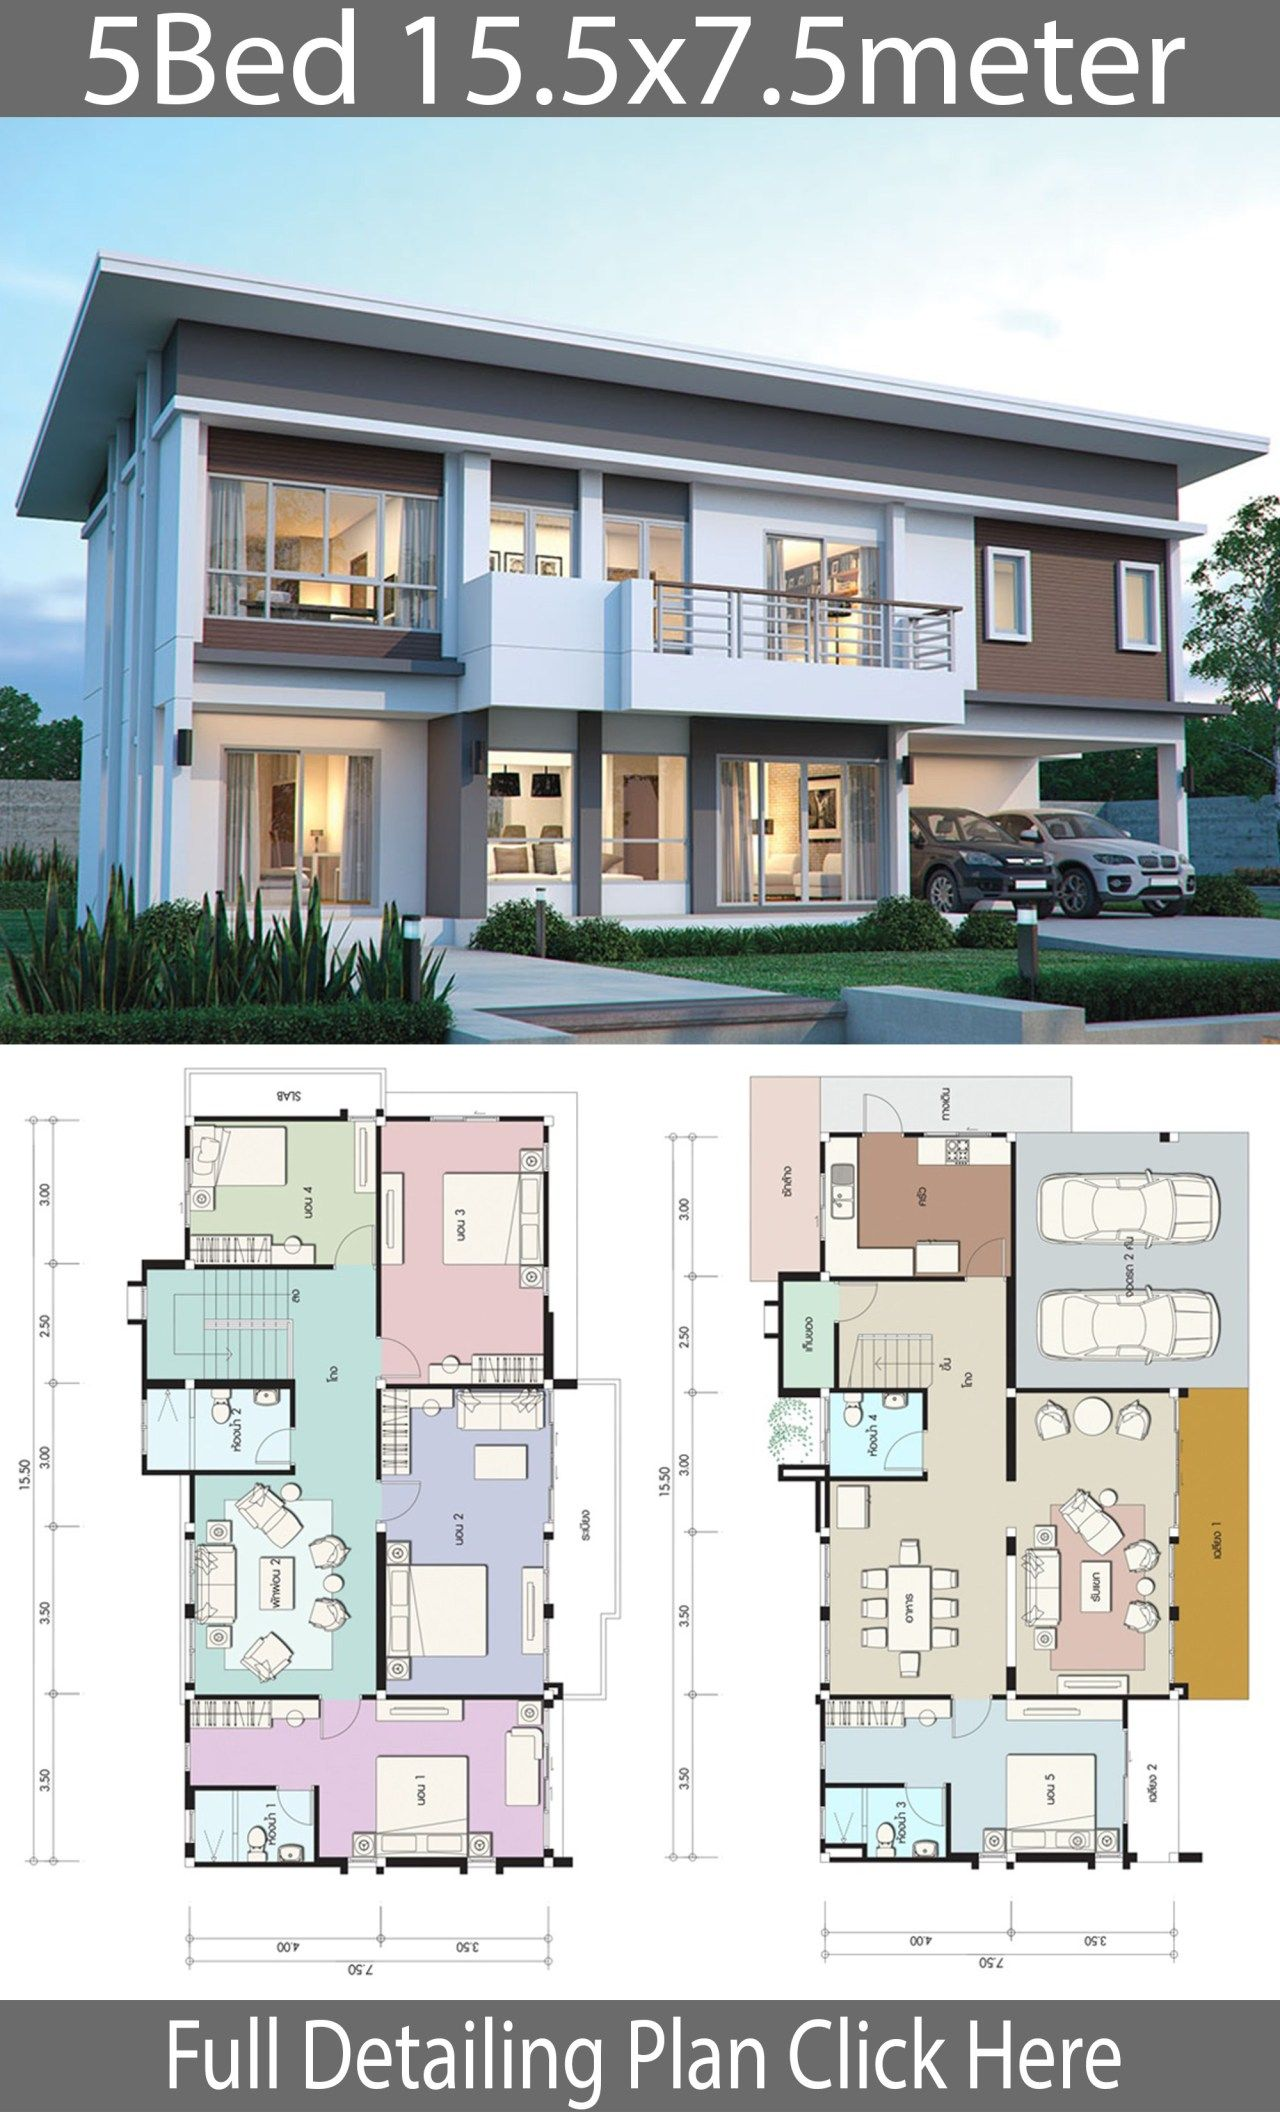 House Design Plan 15 5x7 5m With 5 Bedrooms Home Ideas Beautiful House Plans Double Storey House Plans Model House Plan